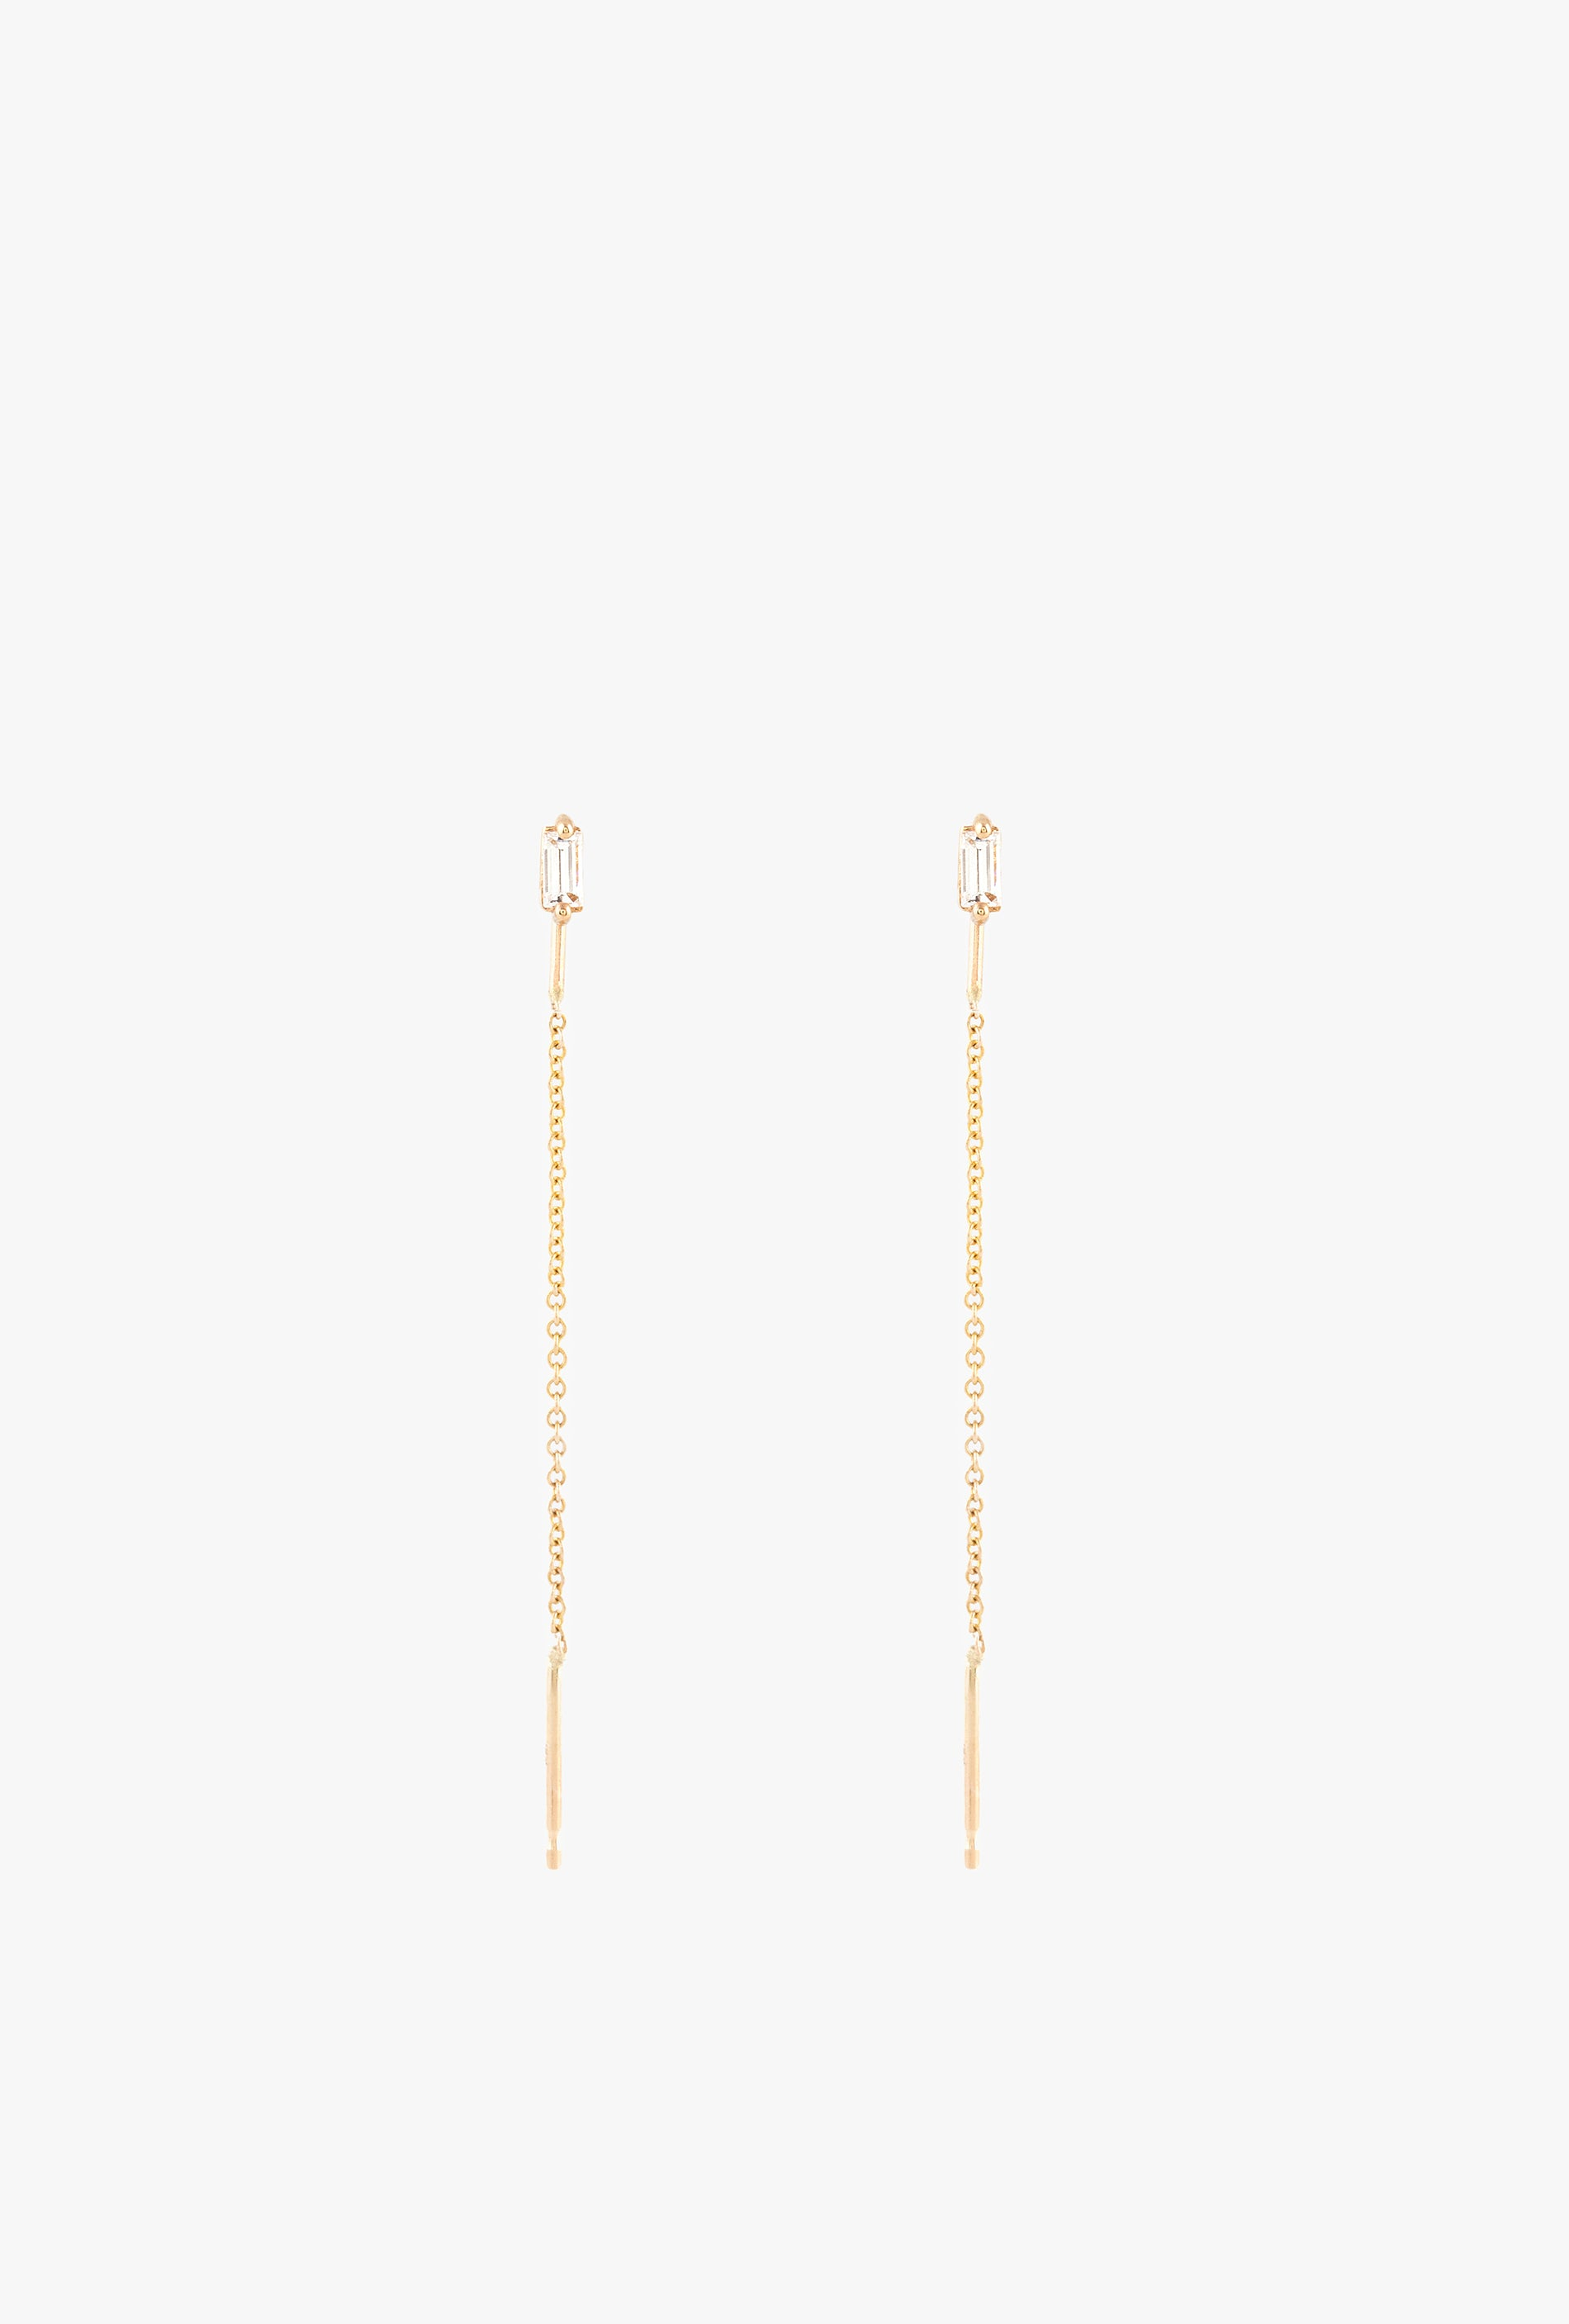 Baguette Diamond Threader Earrings P